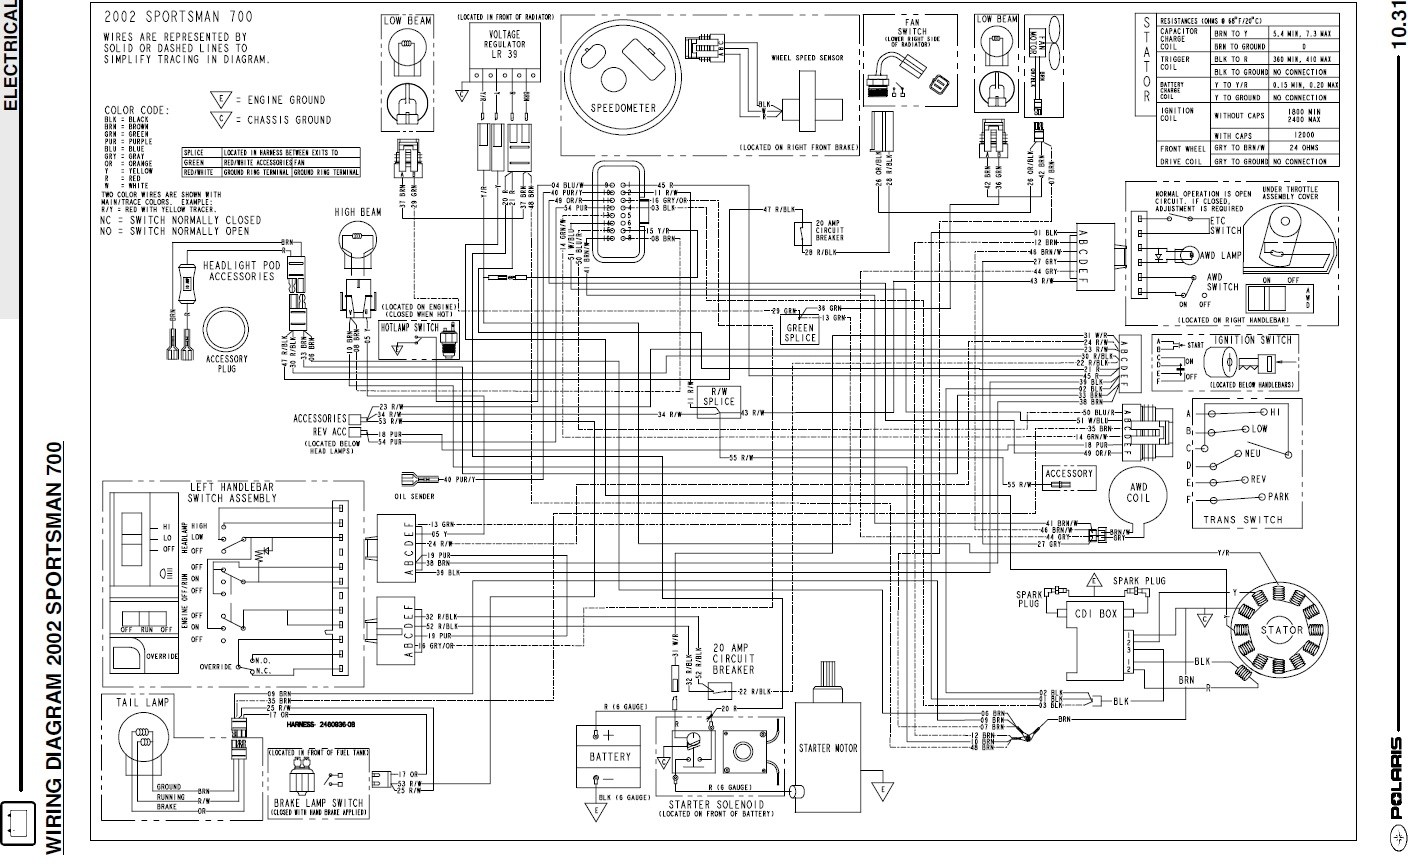 Polaris 400 Wiring Diagram. Polaris 400 Engine, Polaris